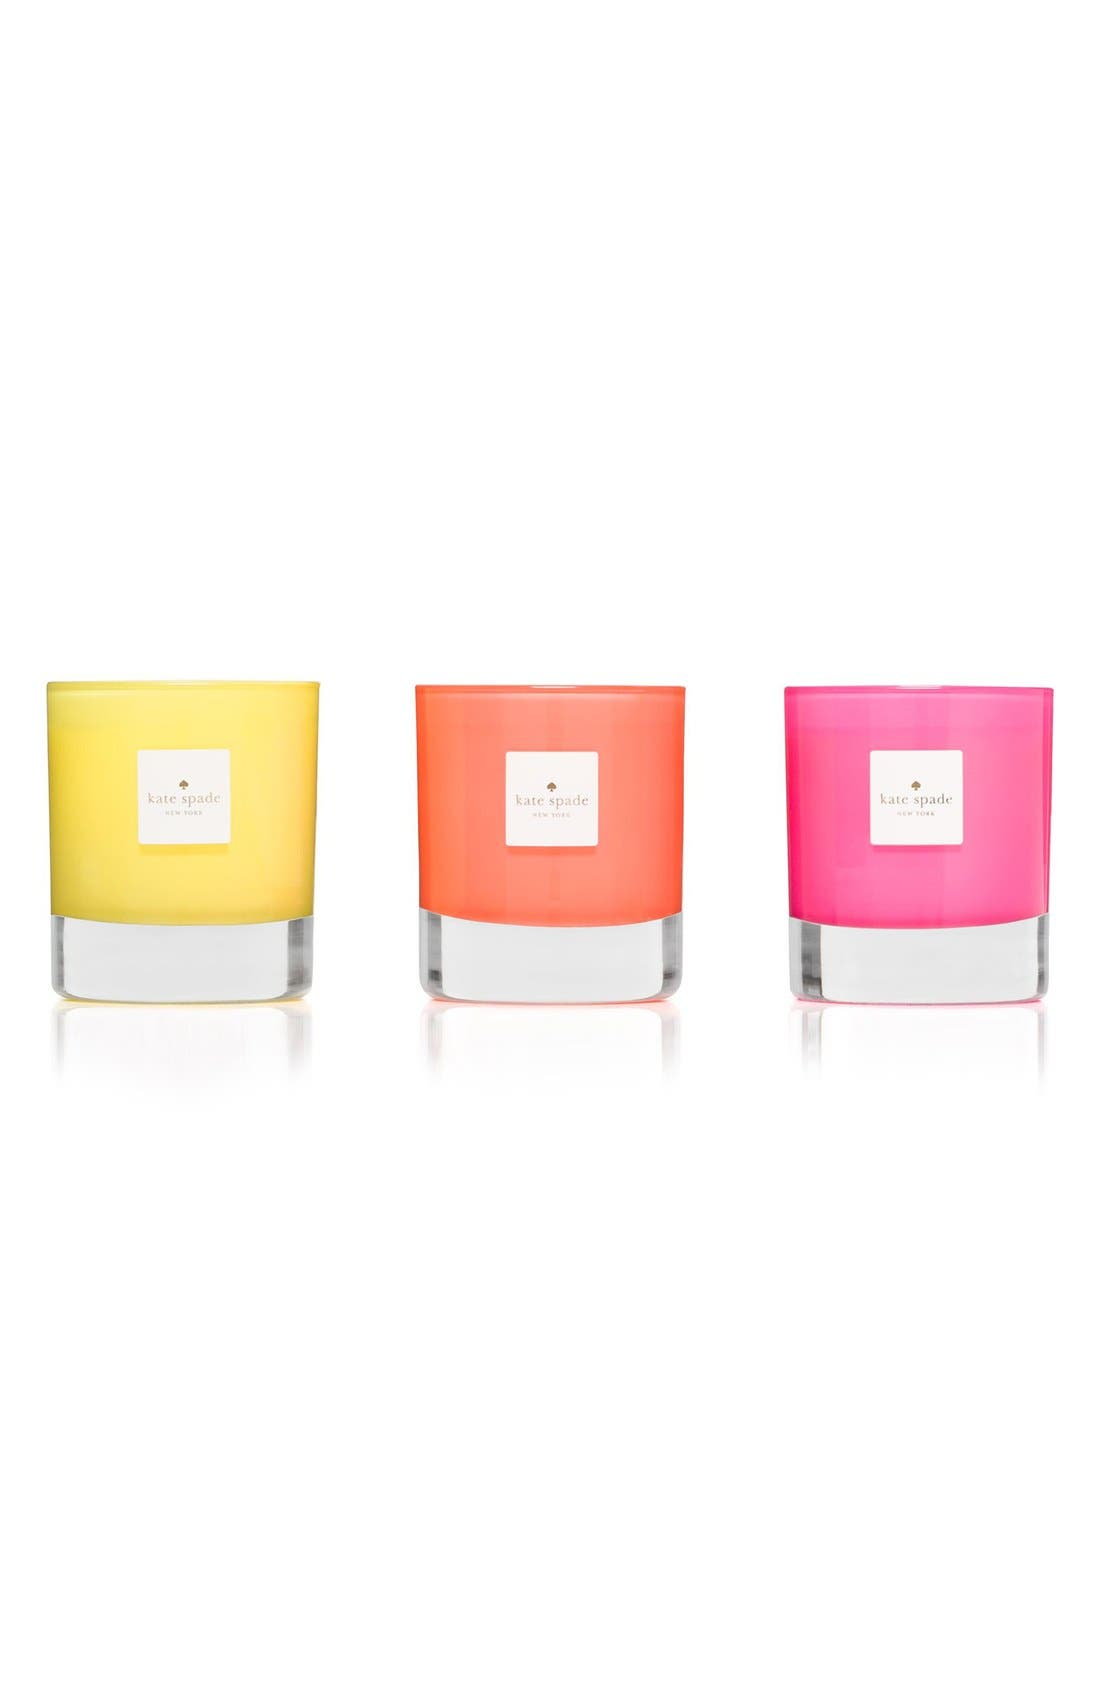 kate spade new york live colorfully candle trio (Limited Edition)